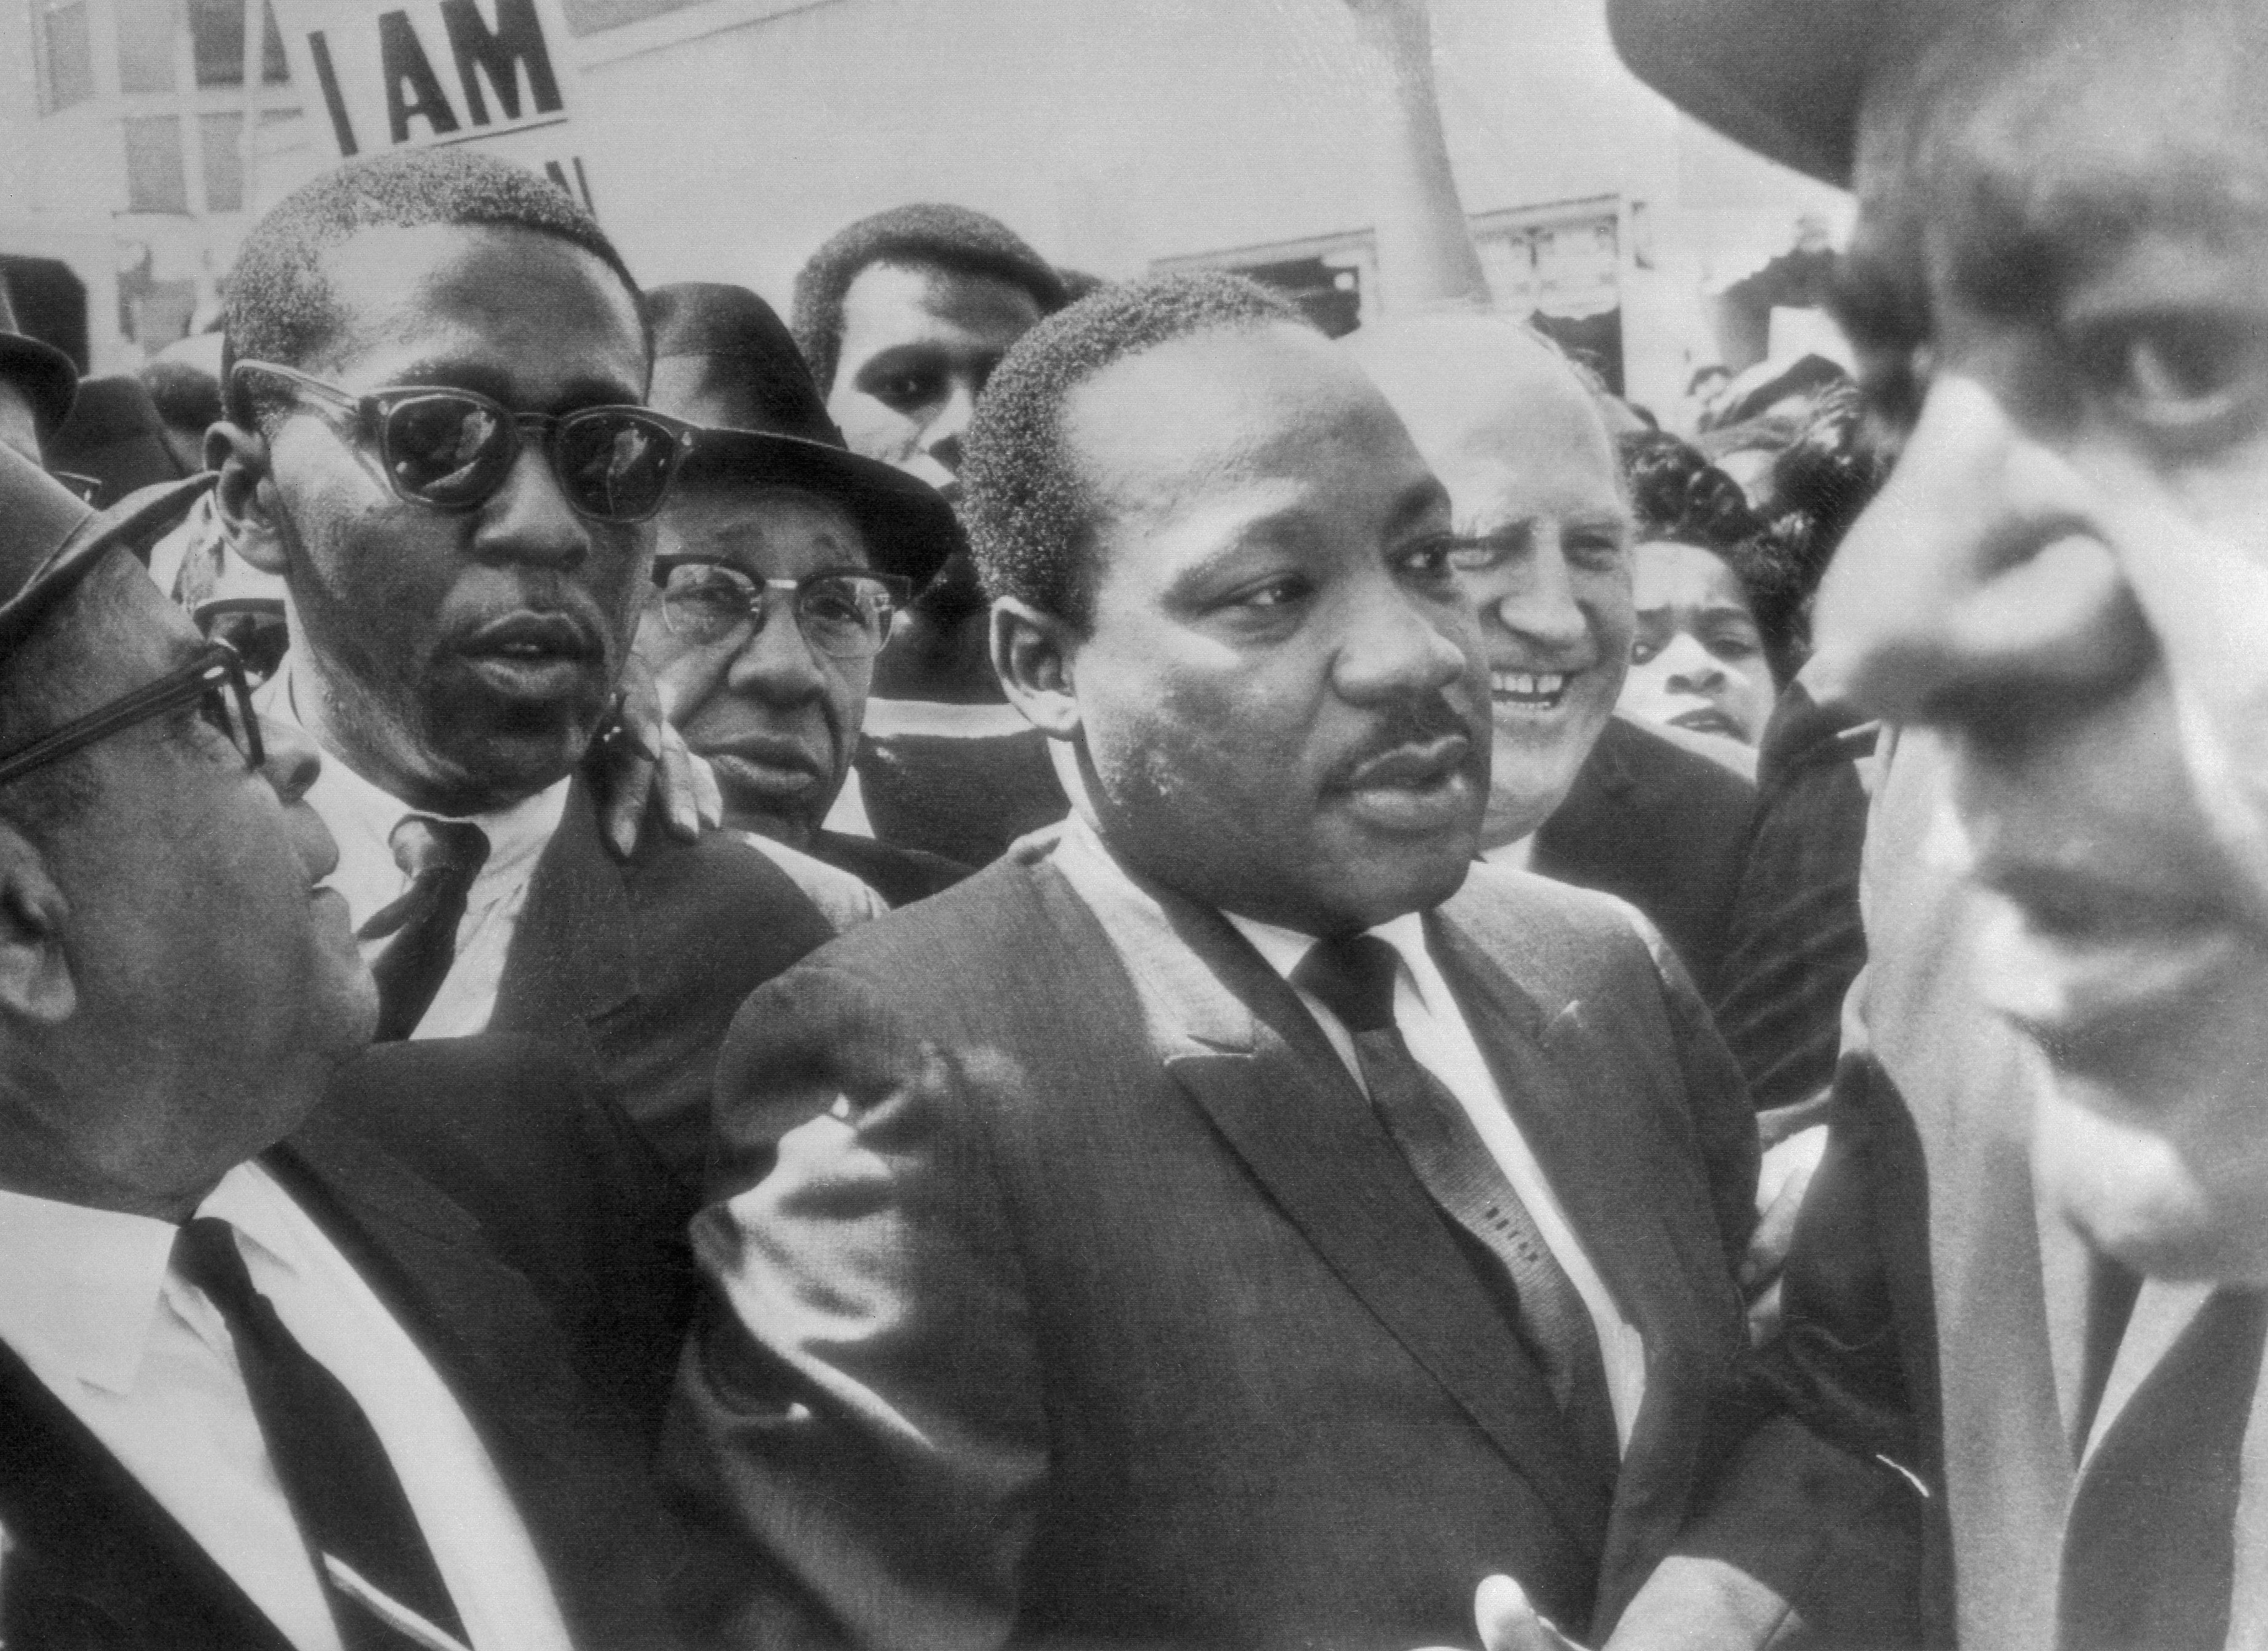 Bettmann via Getty Images Dr. Martin Luther King Jr. is surrounded by leaders of thestriking sanitation workers in Memphis in 1968